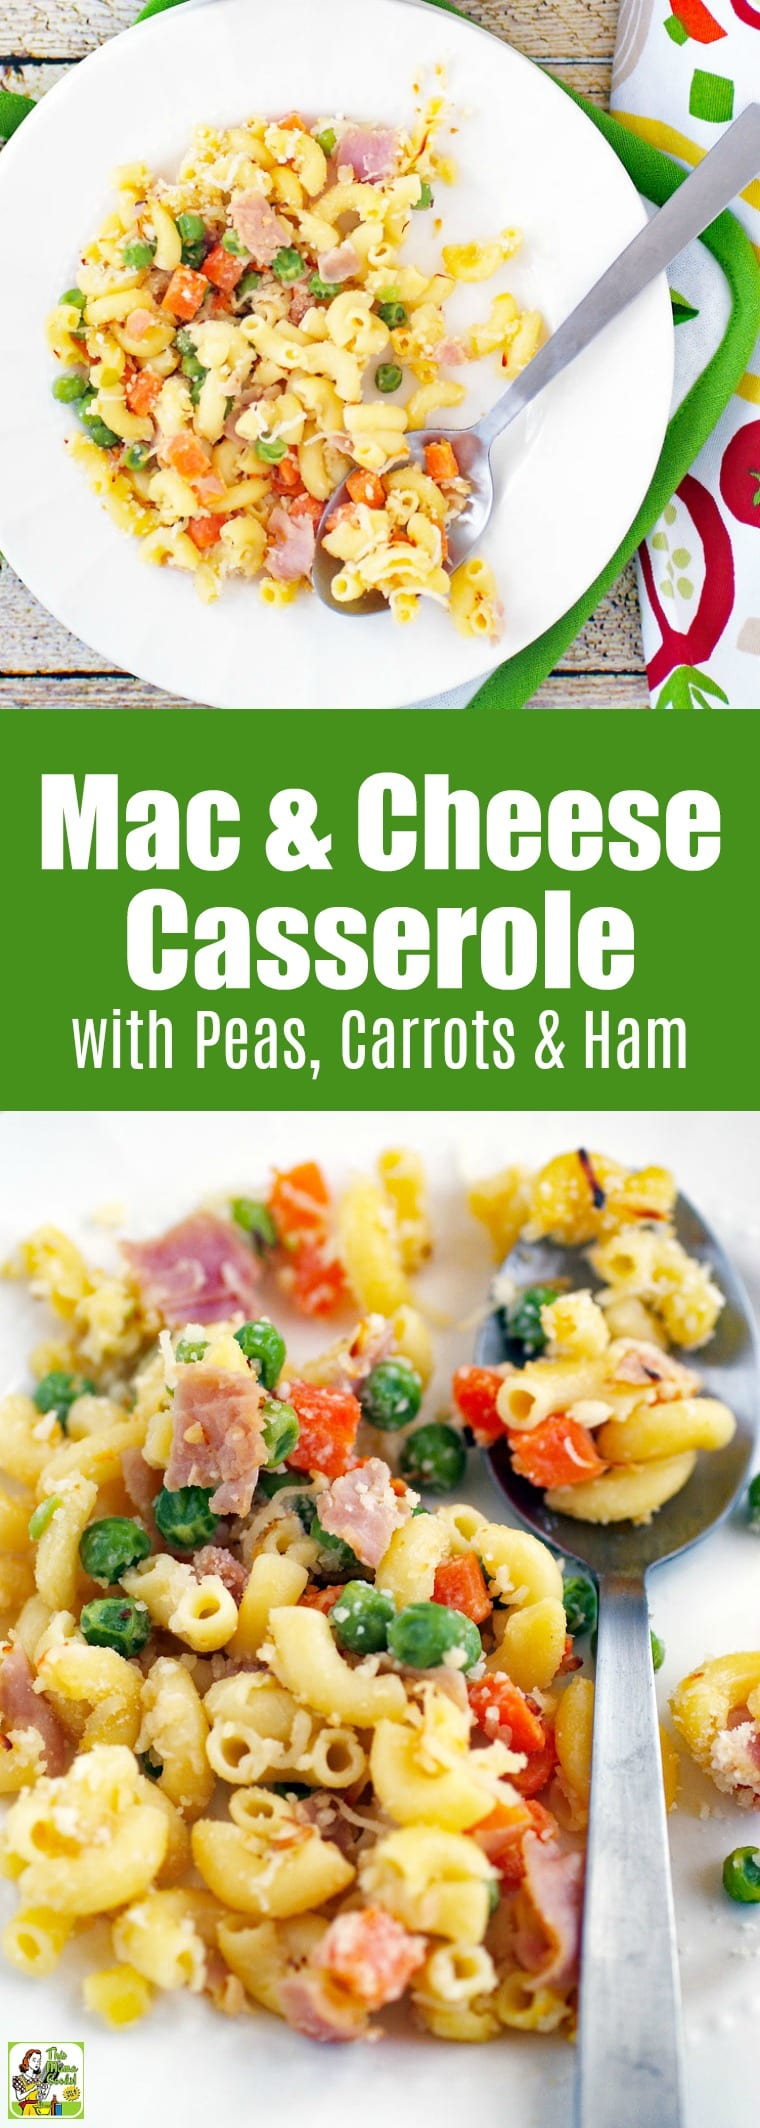 Mac & Cheese Casserole Recipe with Peas, Carrots & Ham